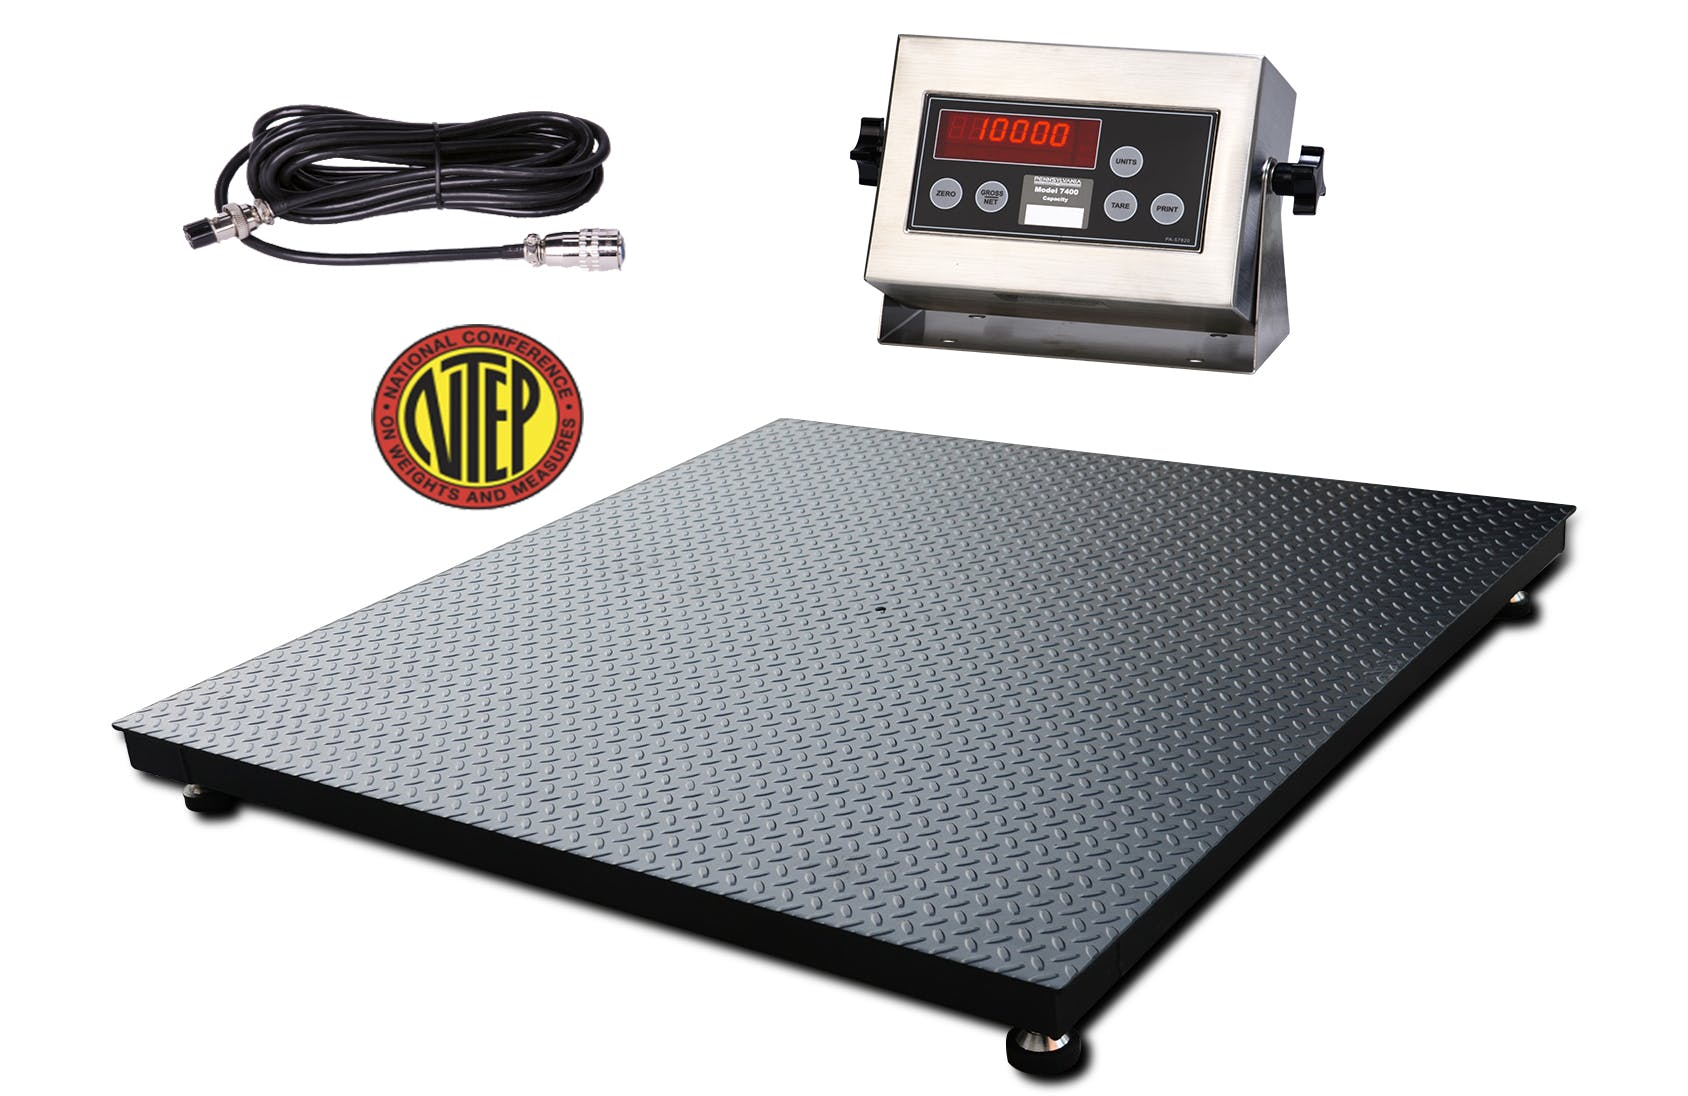 Certified US Made Scale Floor Scale with Pennsylvania PA7400 Indicator - sold by Meilestone